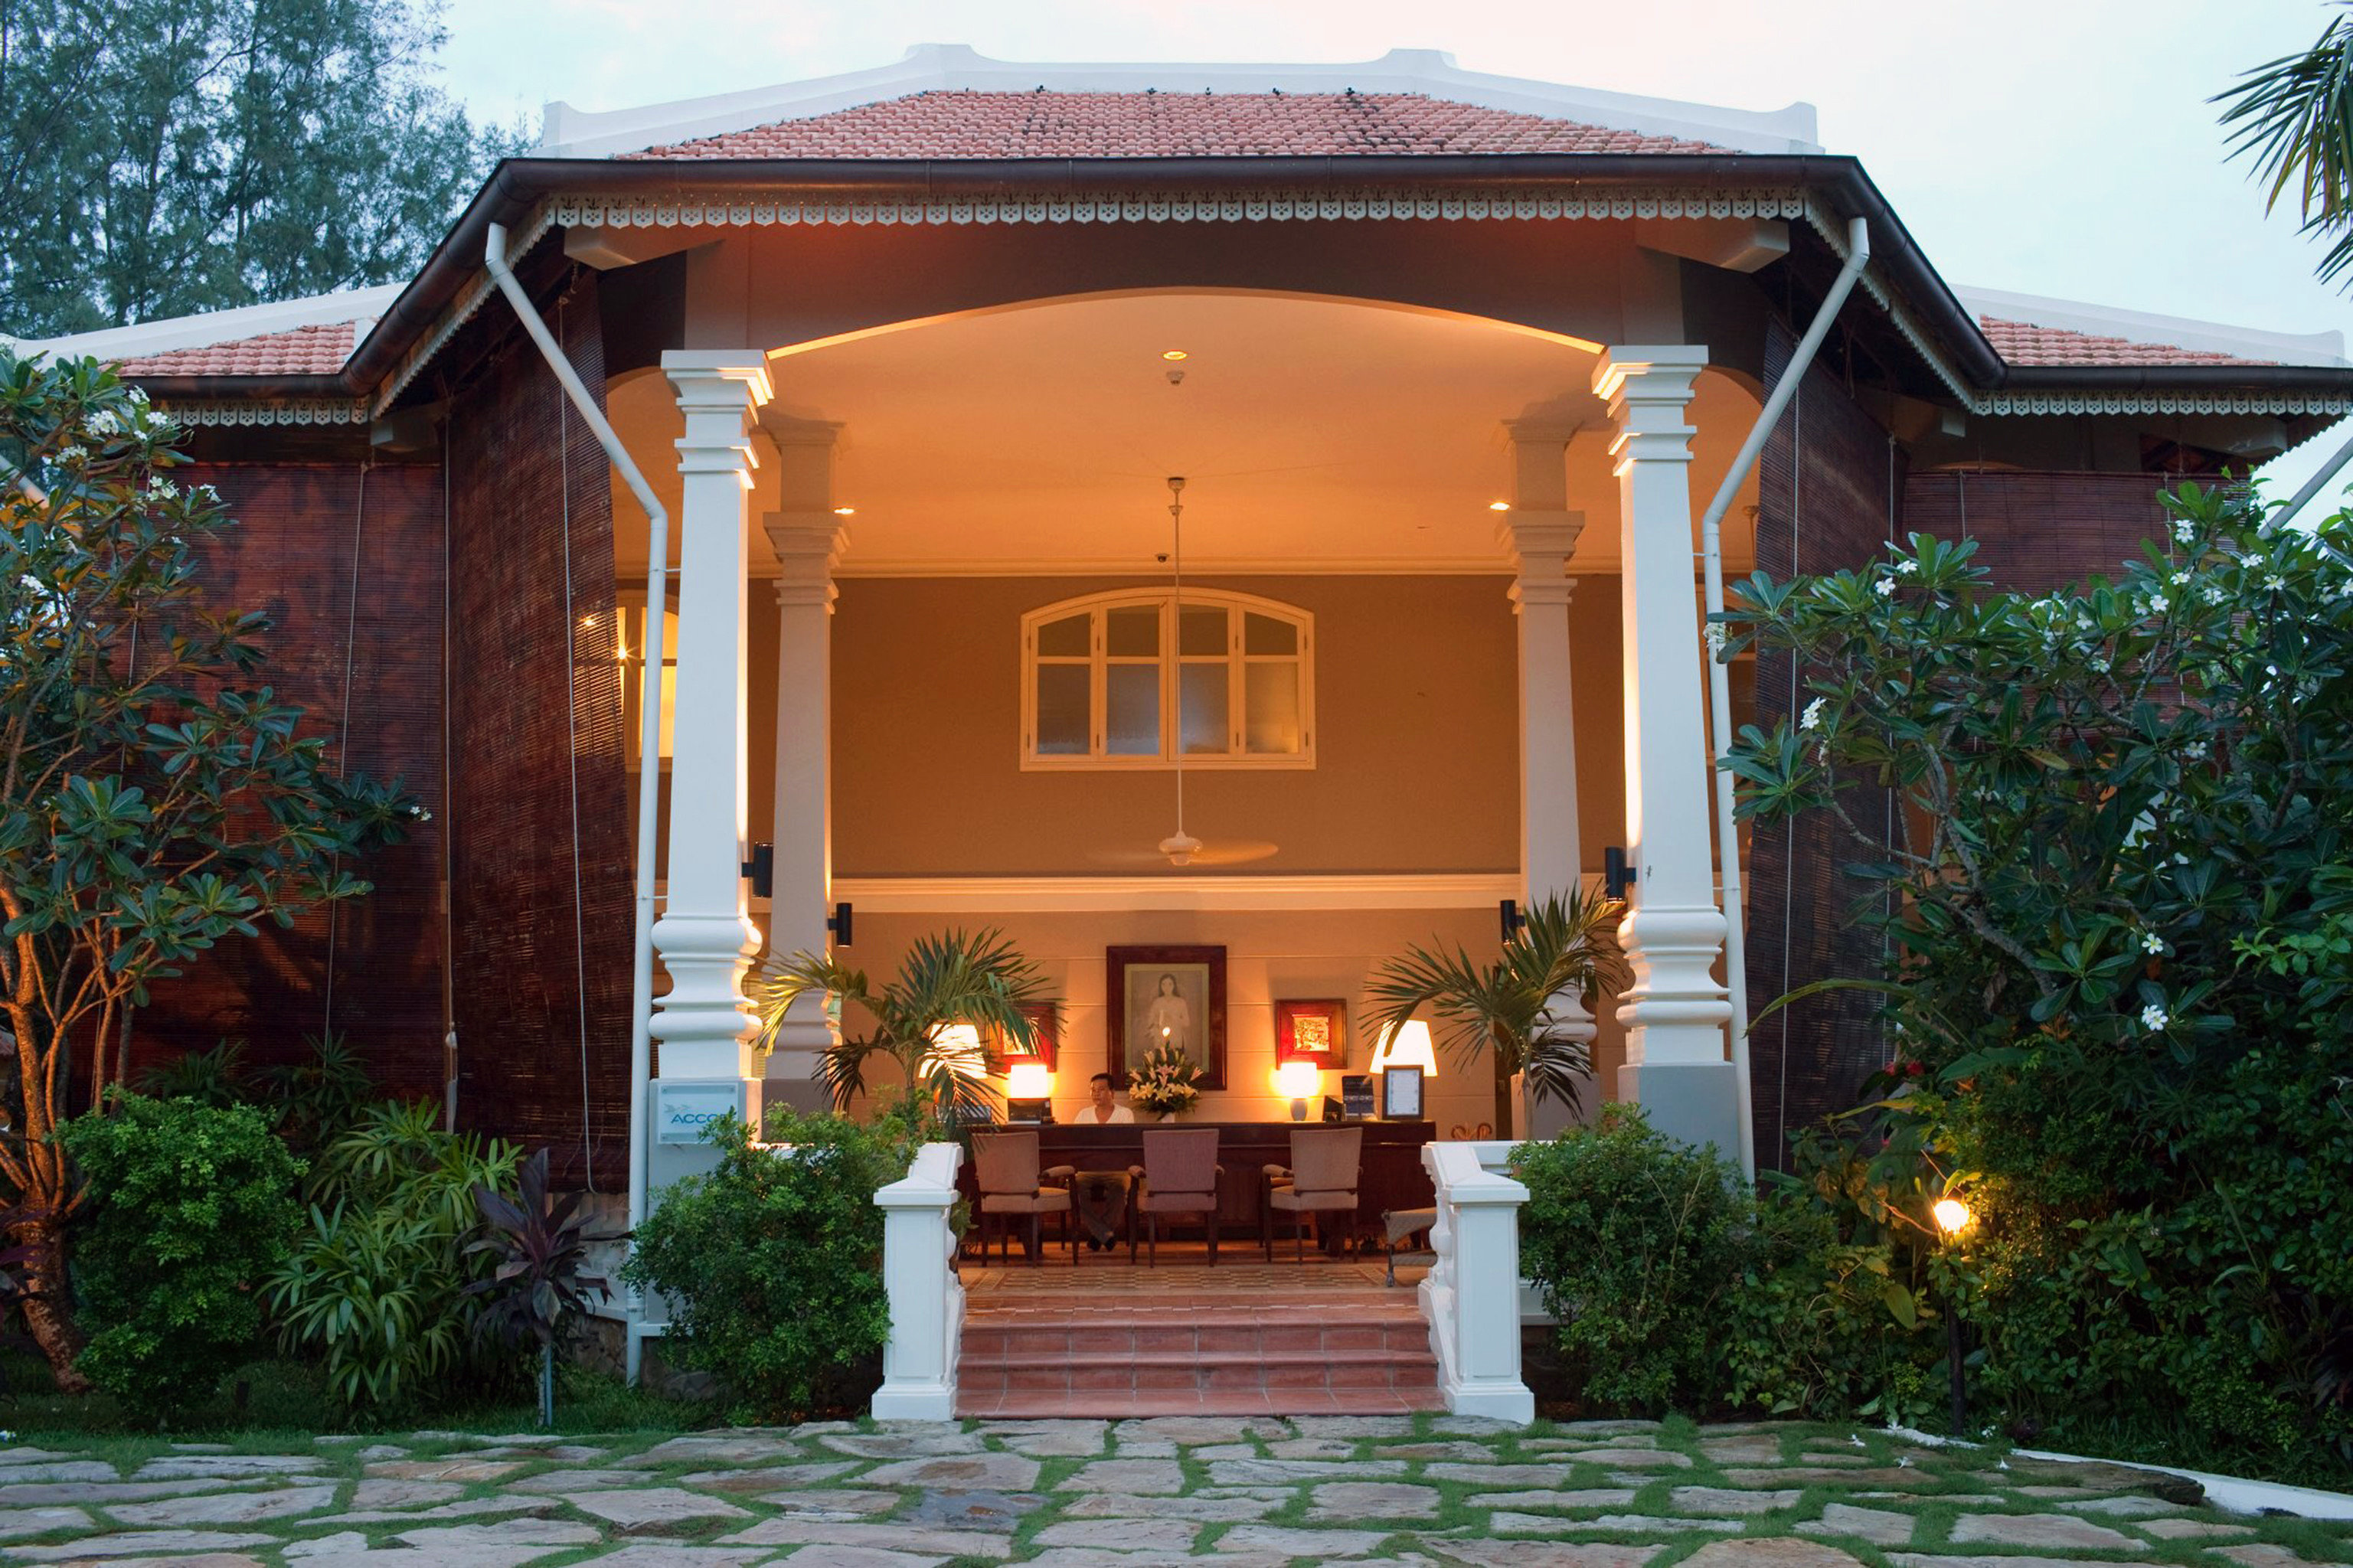 Courtyard Exterior Island Lobby Patio Resort Terrace building tree sky house property home mansion Villa hacienda cottage outdoor structure porch